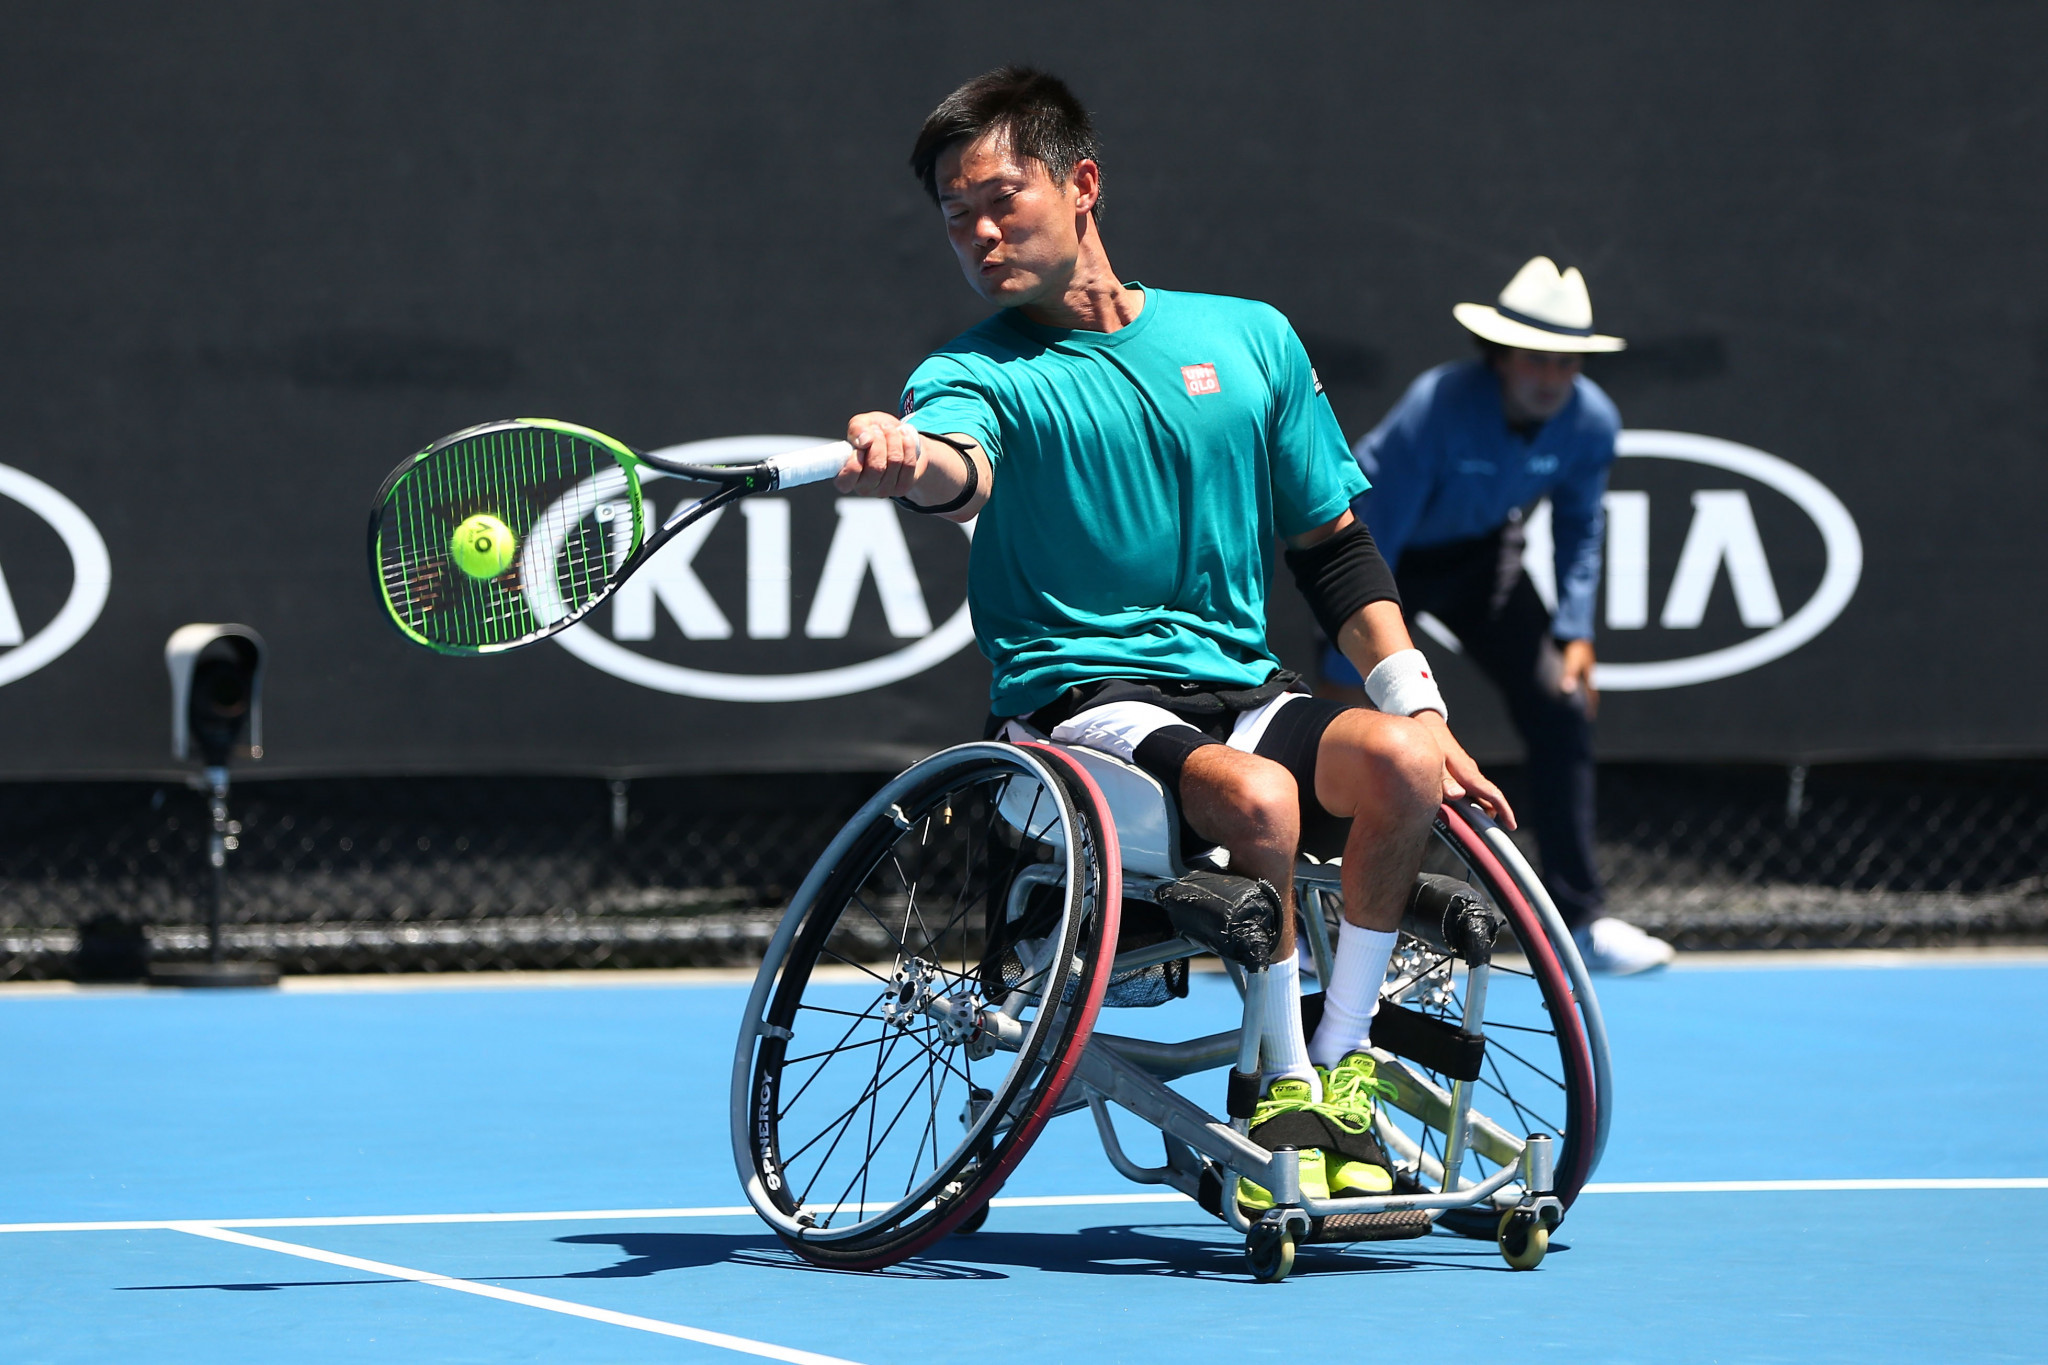 Home favourite Shingo Kunieda of Japan will face Paralympic champion Gordon Reid of Britain in the quarter-finals of the ITF Japan Open ©ITF